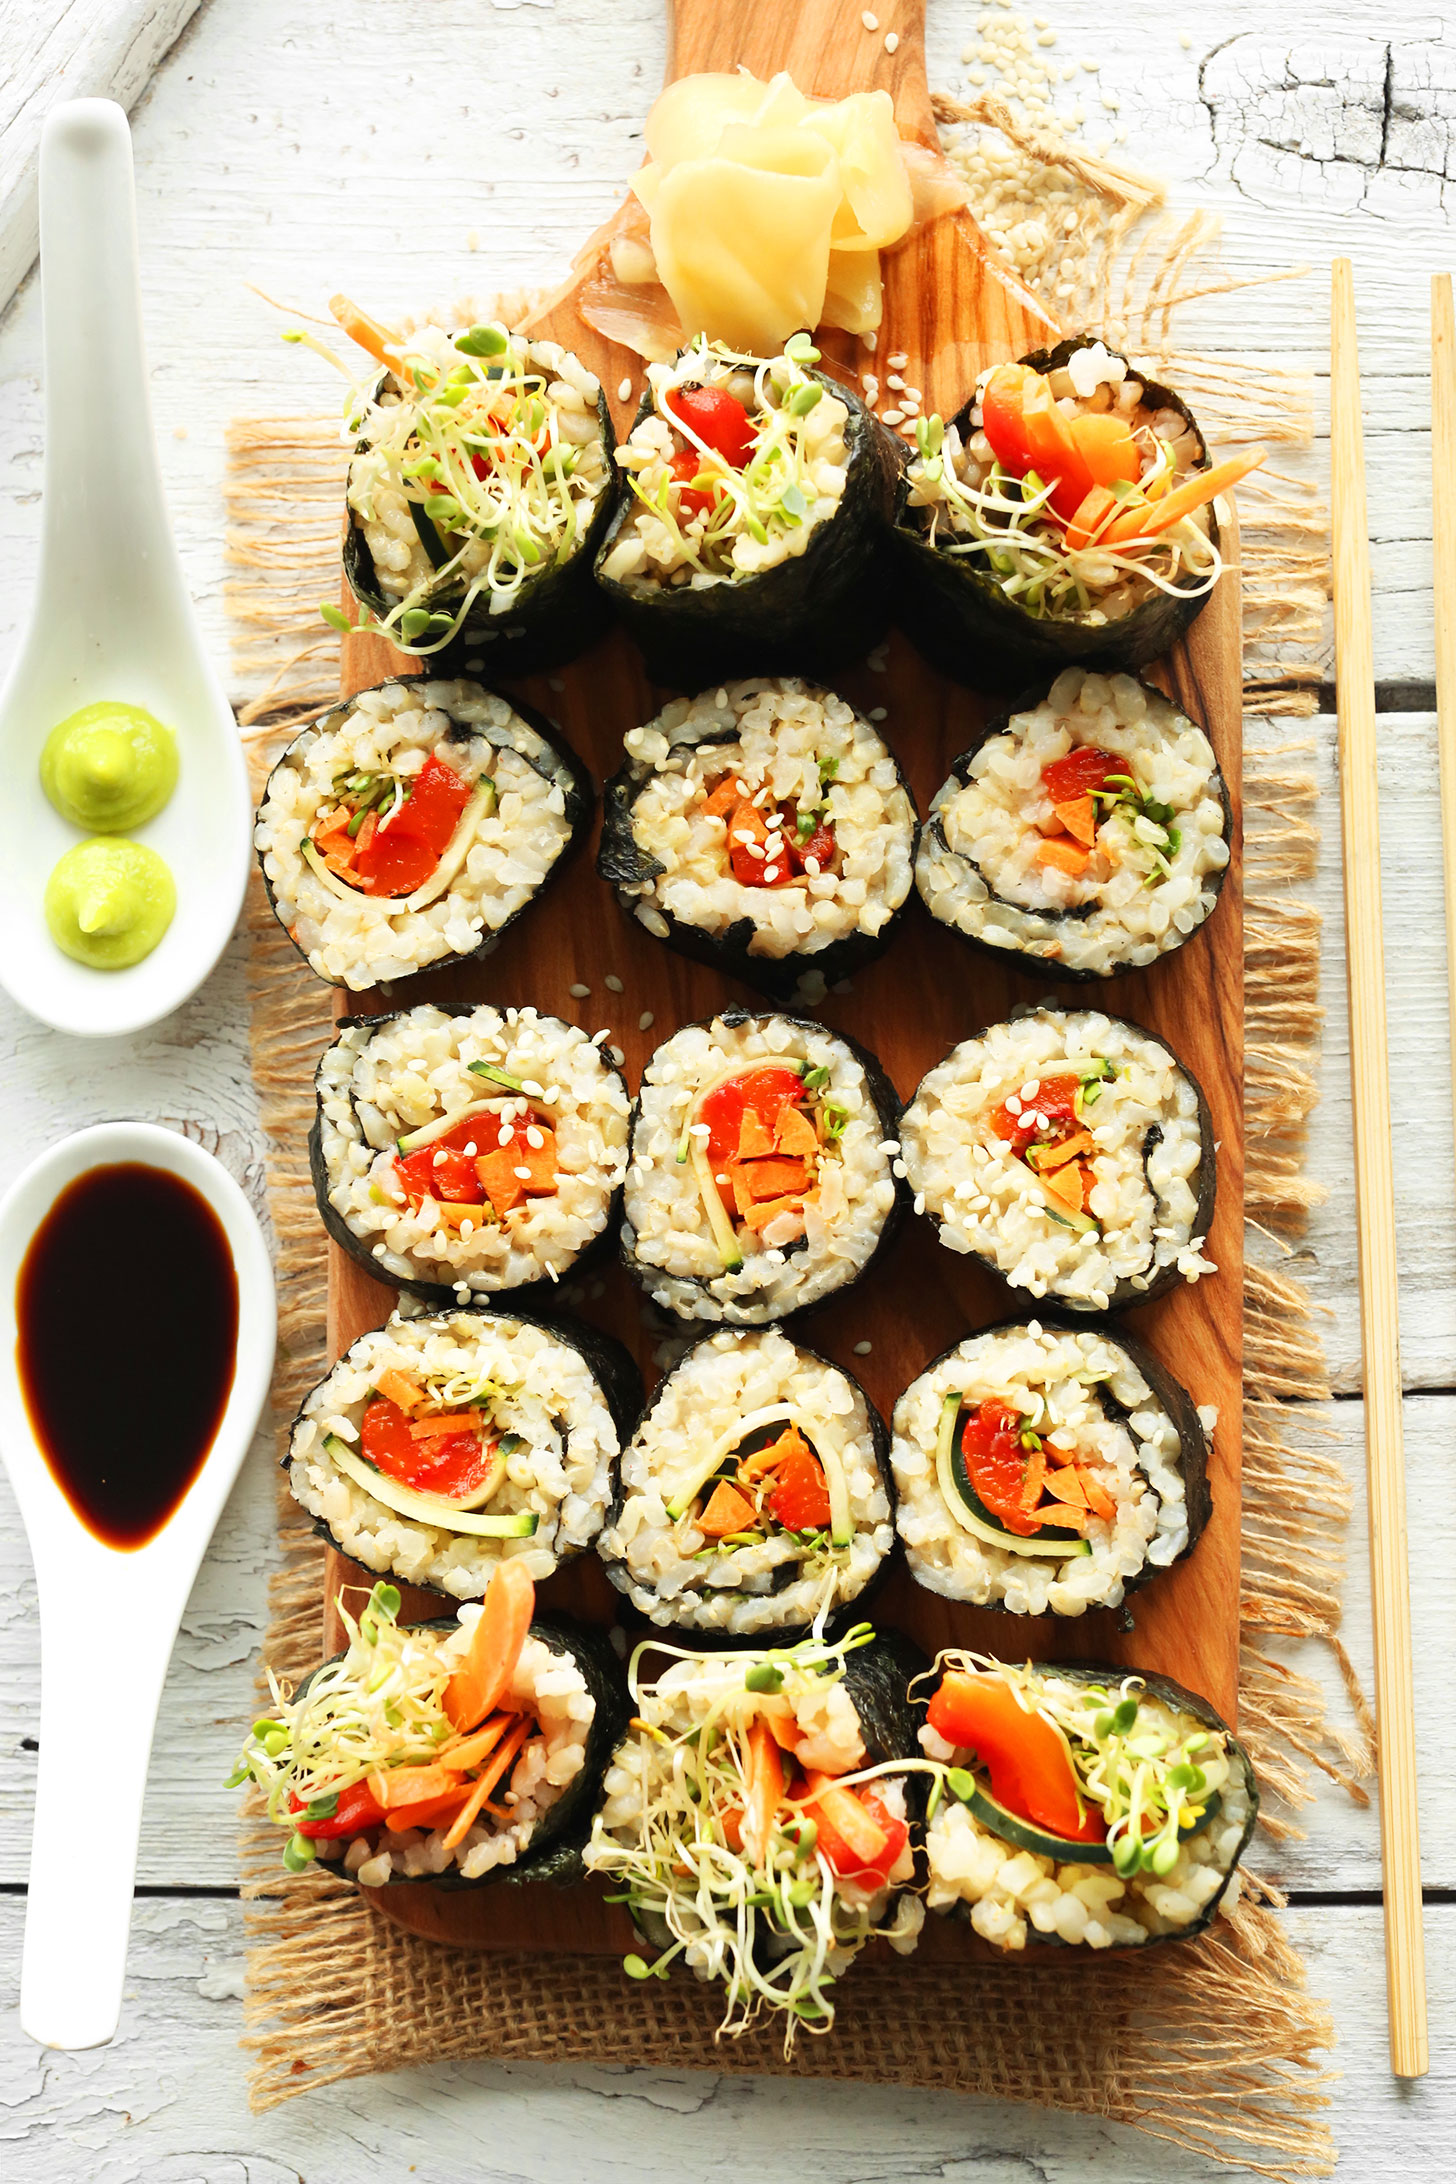 Cutting Board Filled With Rolls Of Our Vegan Brown Rice Sushi Recipe